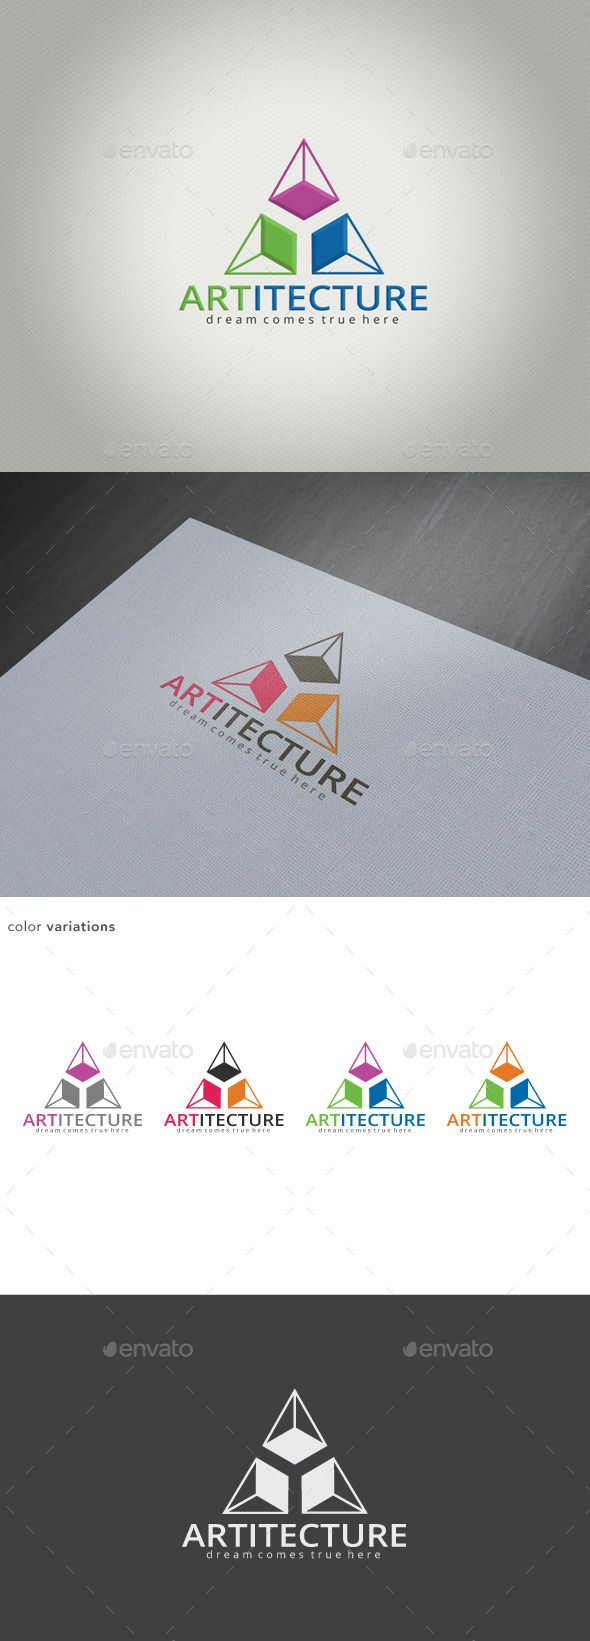 Art & Architecture Logo — Vector EPS #developing #creative • Available here → https://graphicriver.net/item/art-architecture-logo/11582279?ref=pxcr